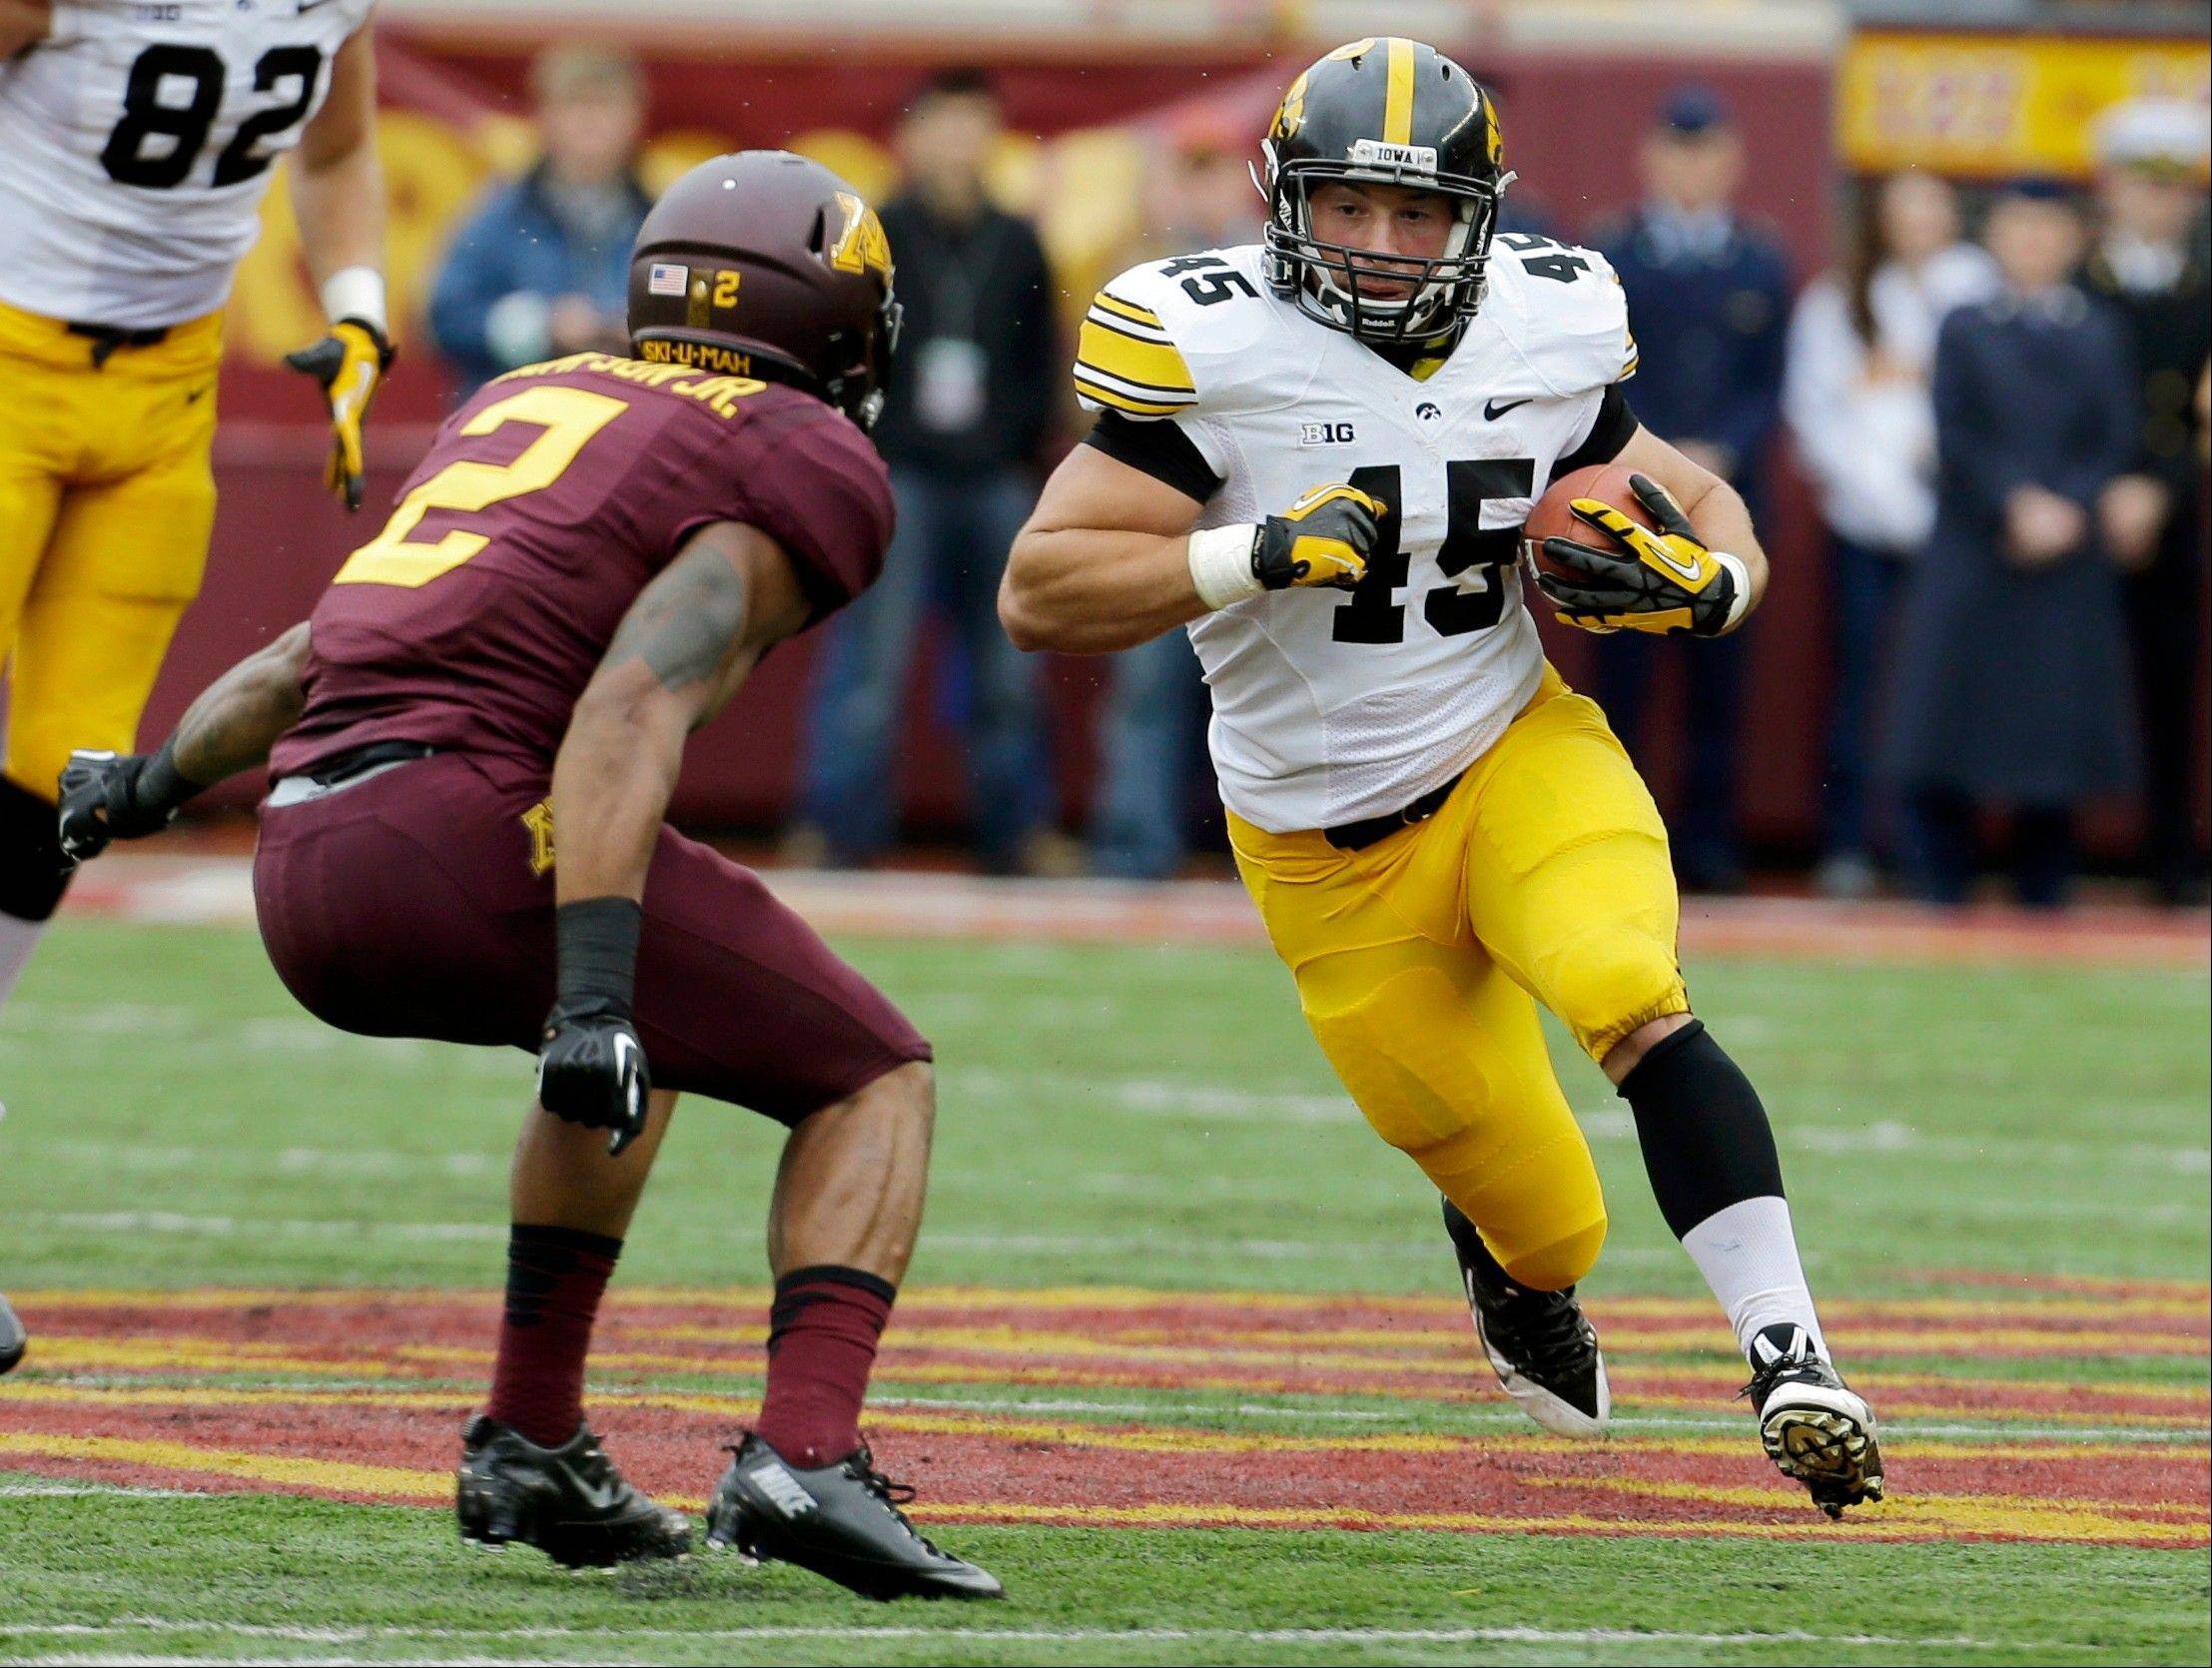 Hawkeyes fullback Mark Weisman, a Stevenson High School grad, carries the ball during the Sept. 28 game against Minnesota. Like Ohio State, Iowa favors chewing up yardage between the tackles.